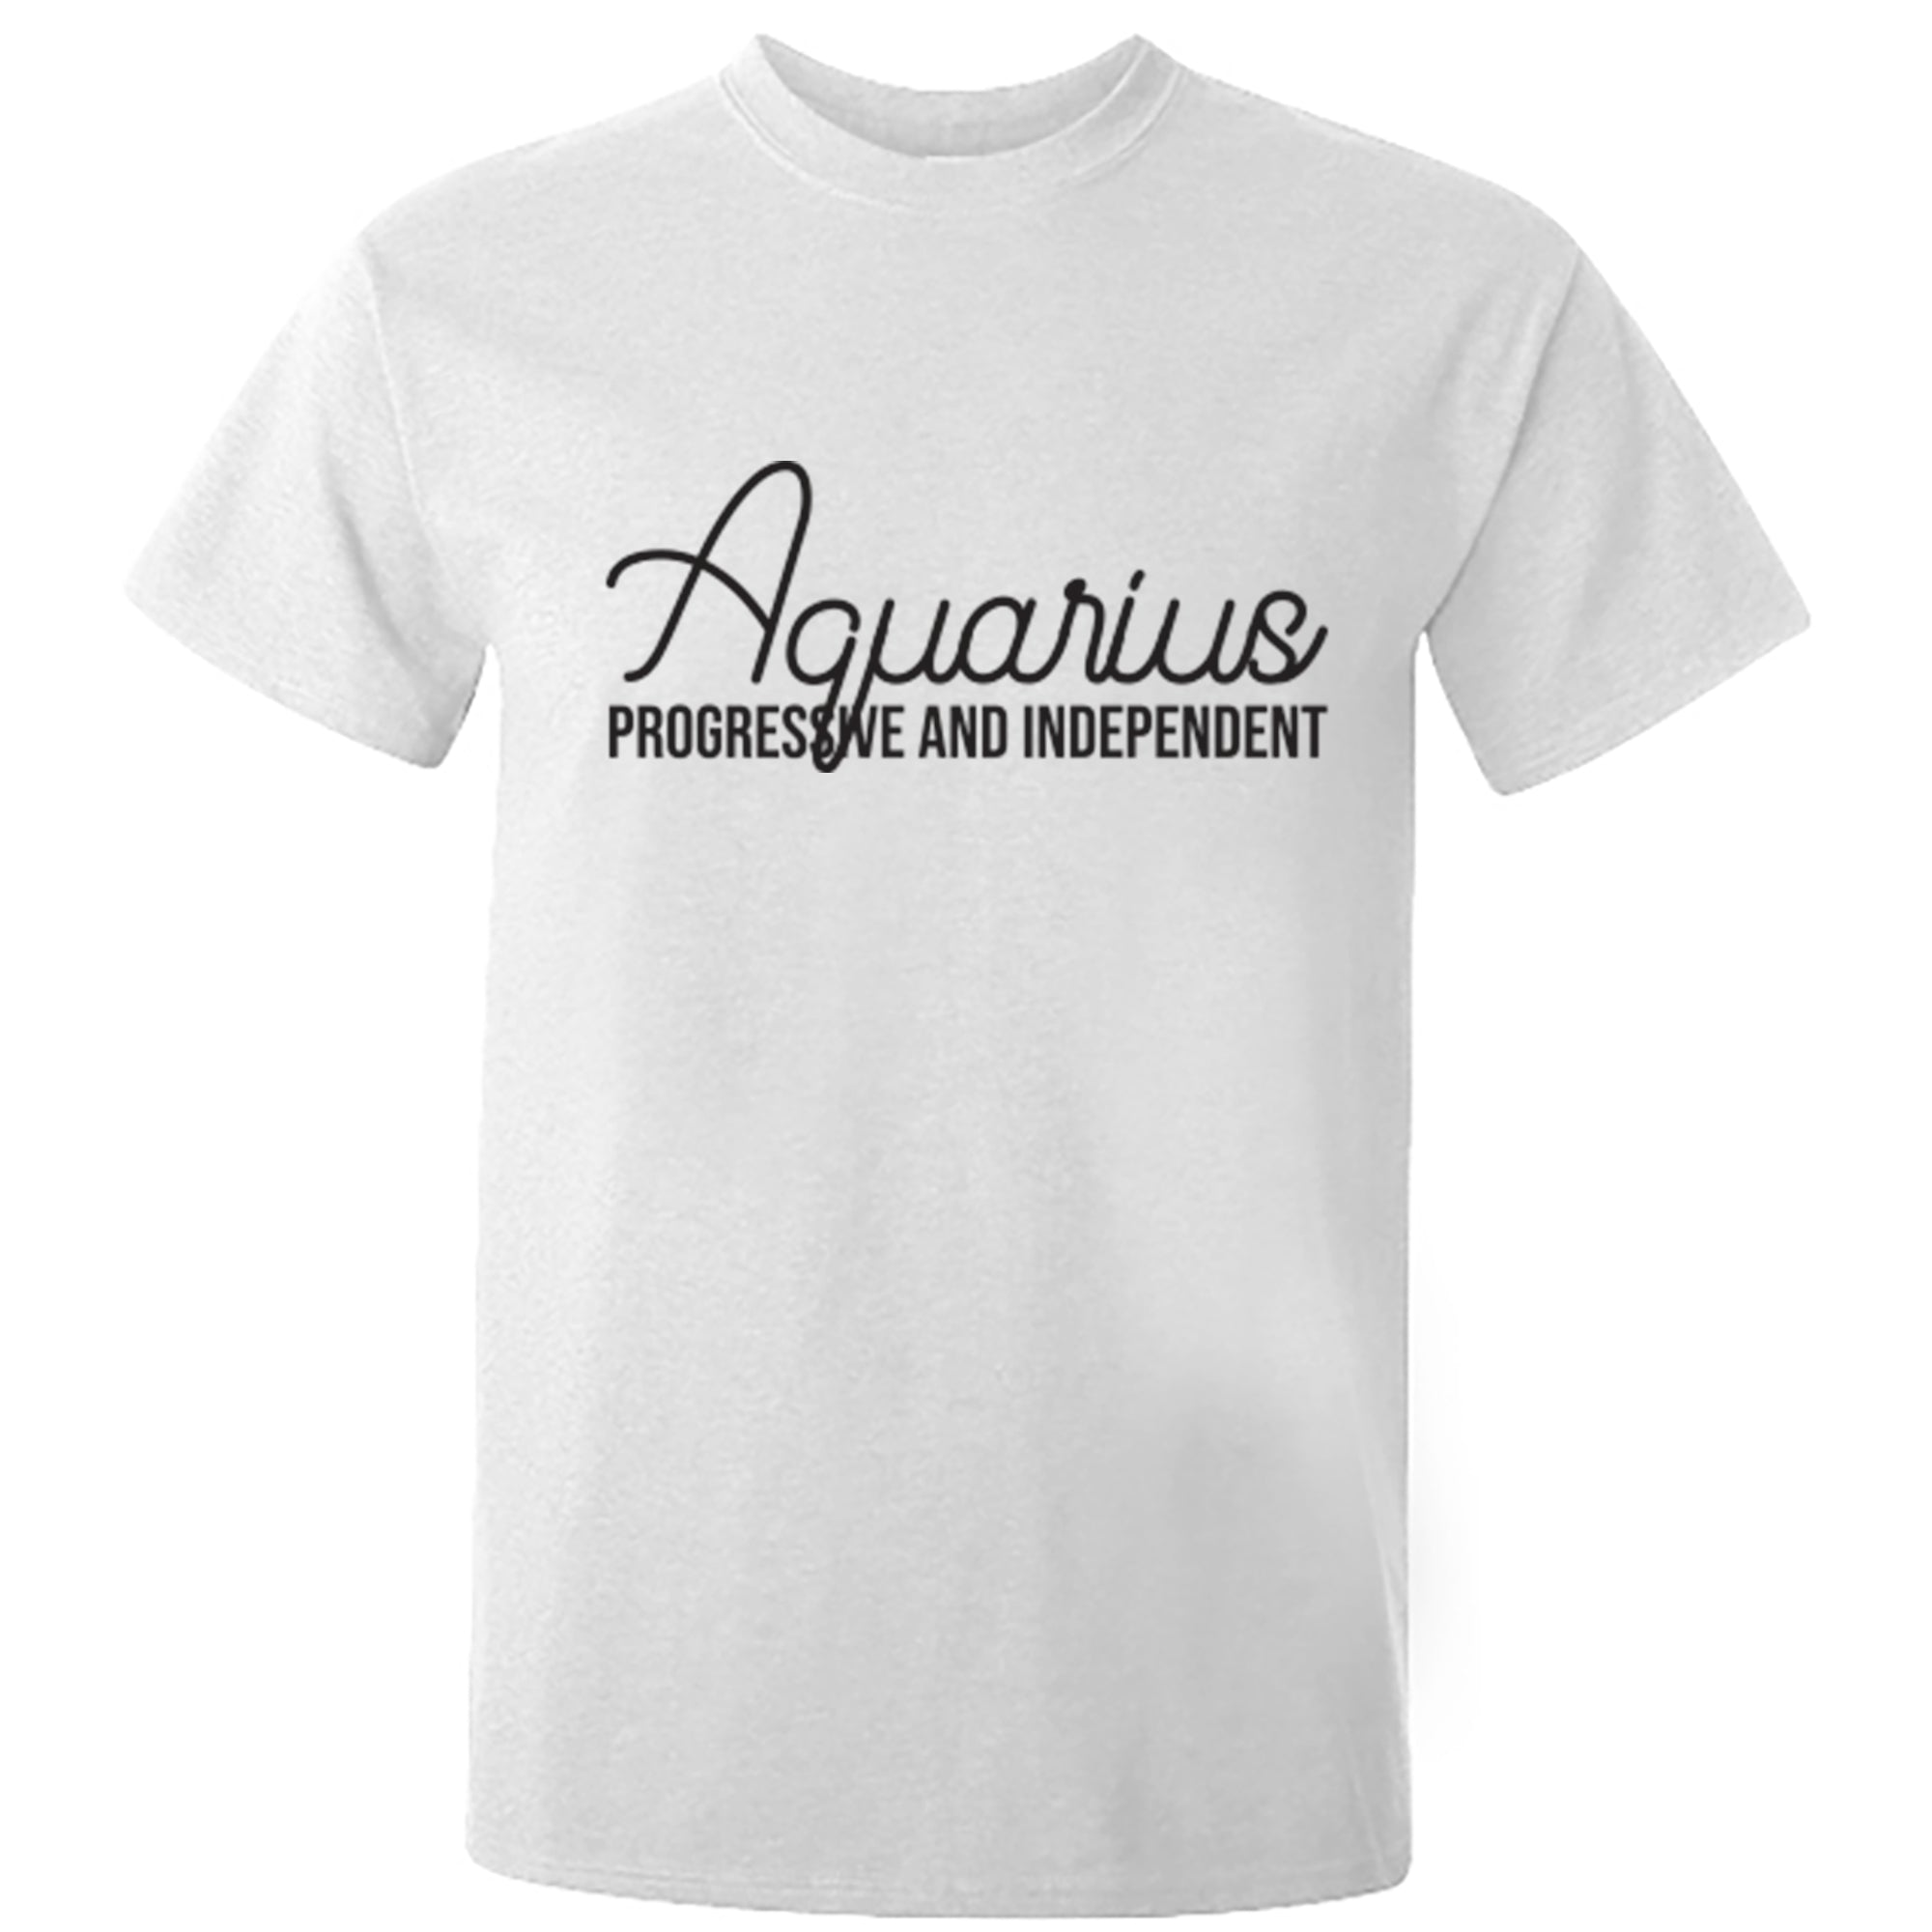 Aquarius, Progressive And Independent Zodiac Star Sign Unisex Fit T-Shirt S0445 - Illustrated Identity Ltd.